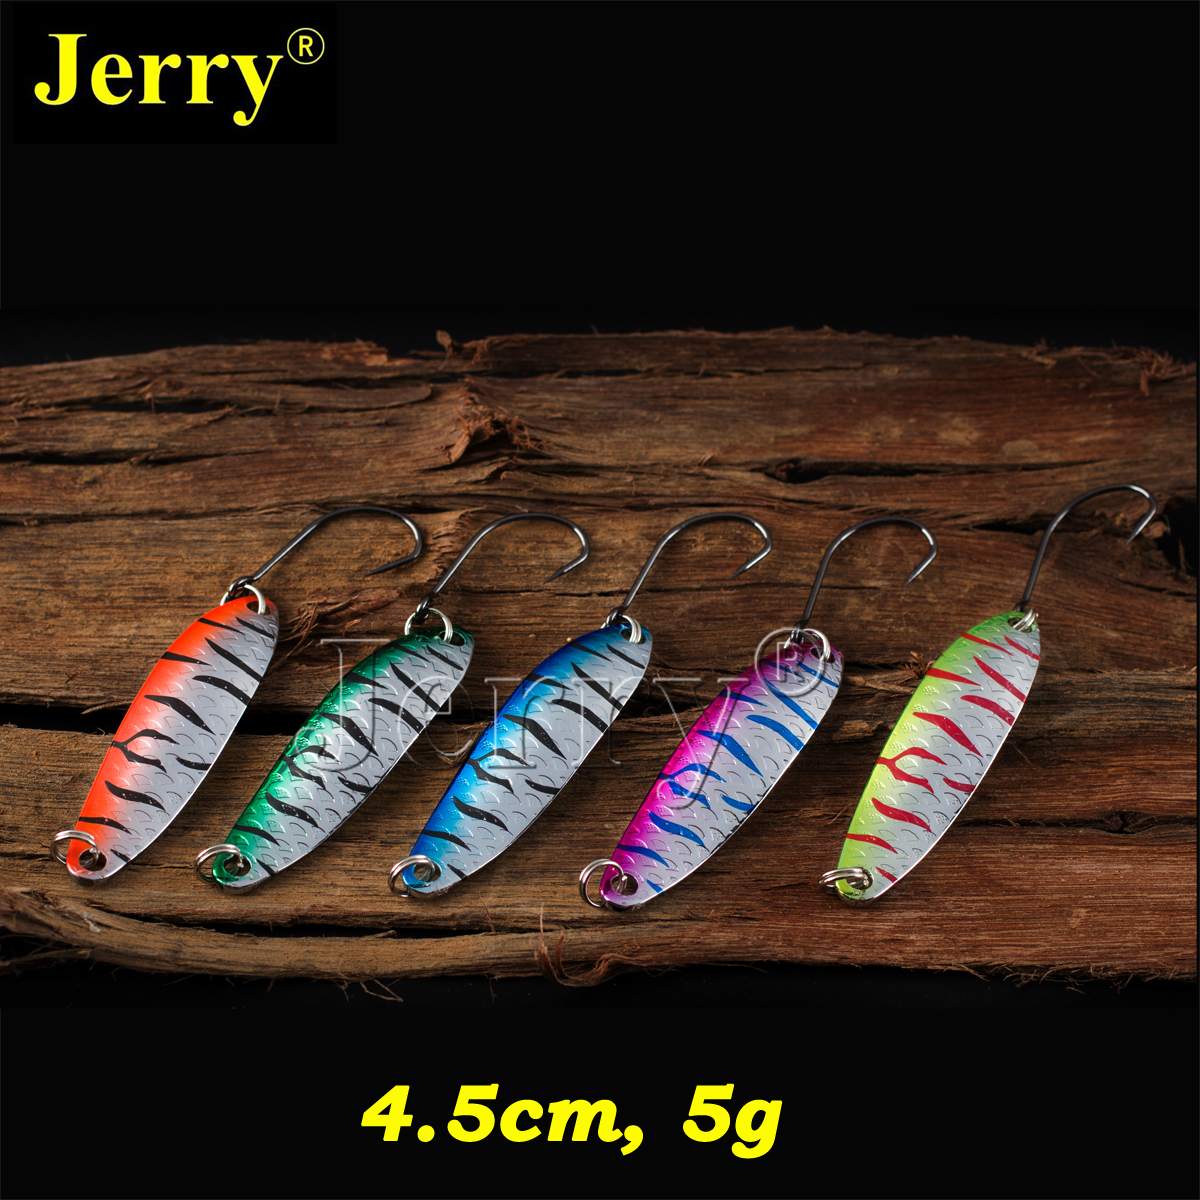 Jerry 5pcs 5g willow long casting spoons fishing lures trout spoons free tackle box spinner bait mikado willow 2 5 г медь